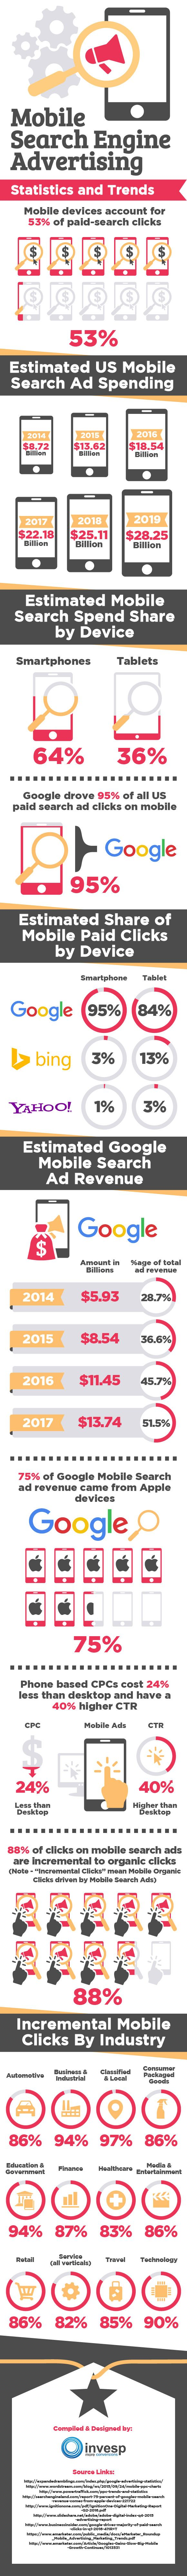 Mobile Search Advertising: What You Need to Know #MobileTech #Mobile #tech